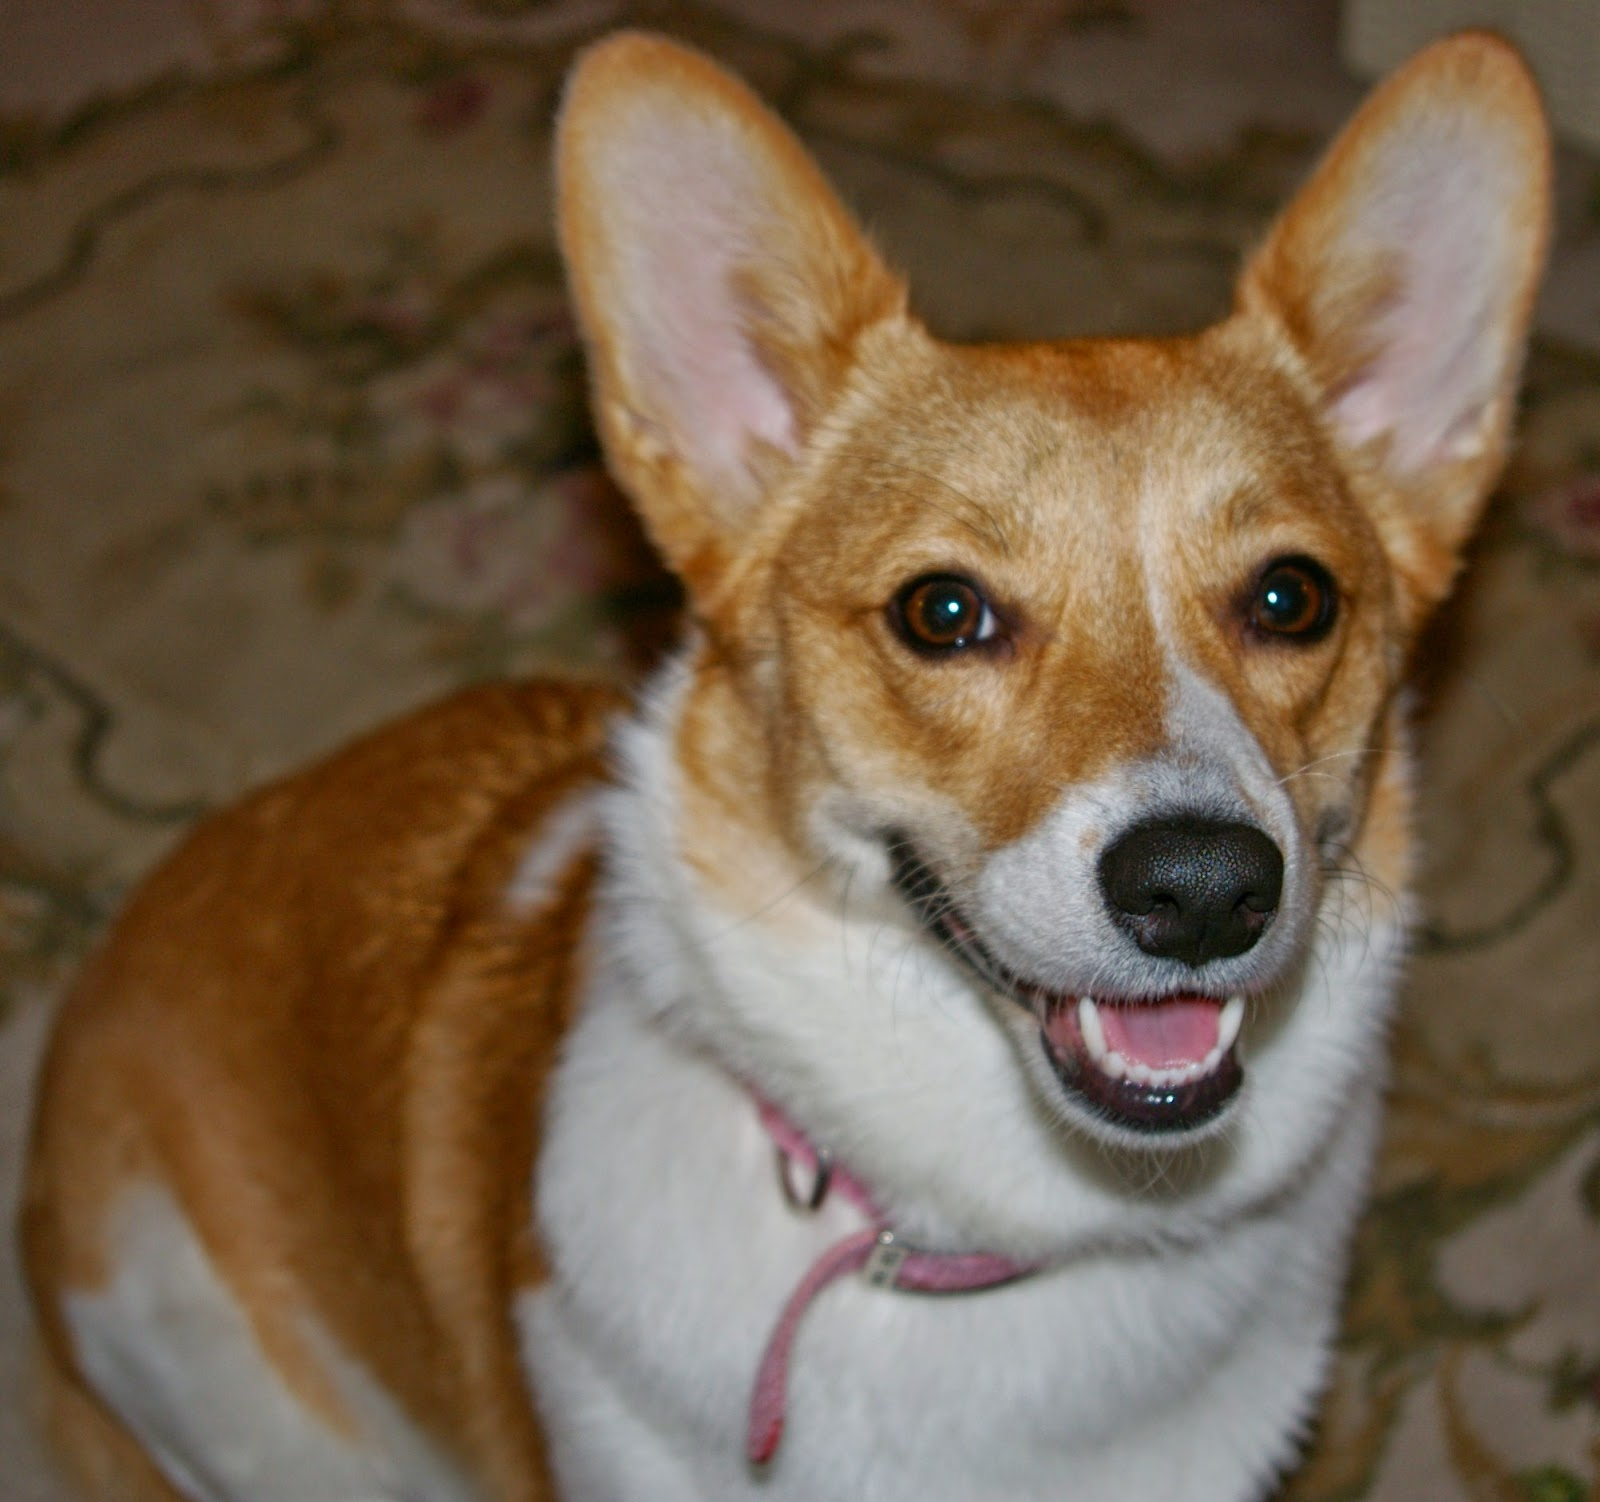 http://corgipals.org/Fundraisers/HelpingPaws/Lucy2.aspx